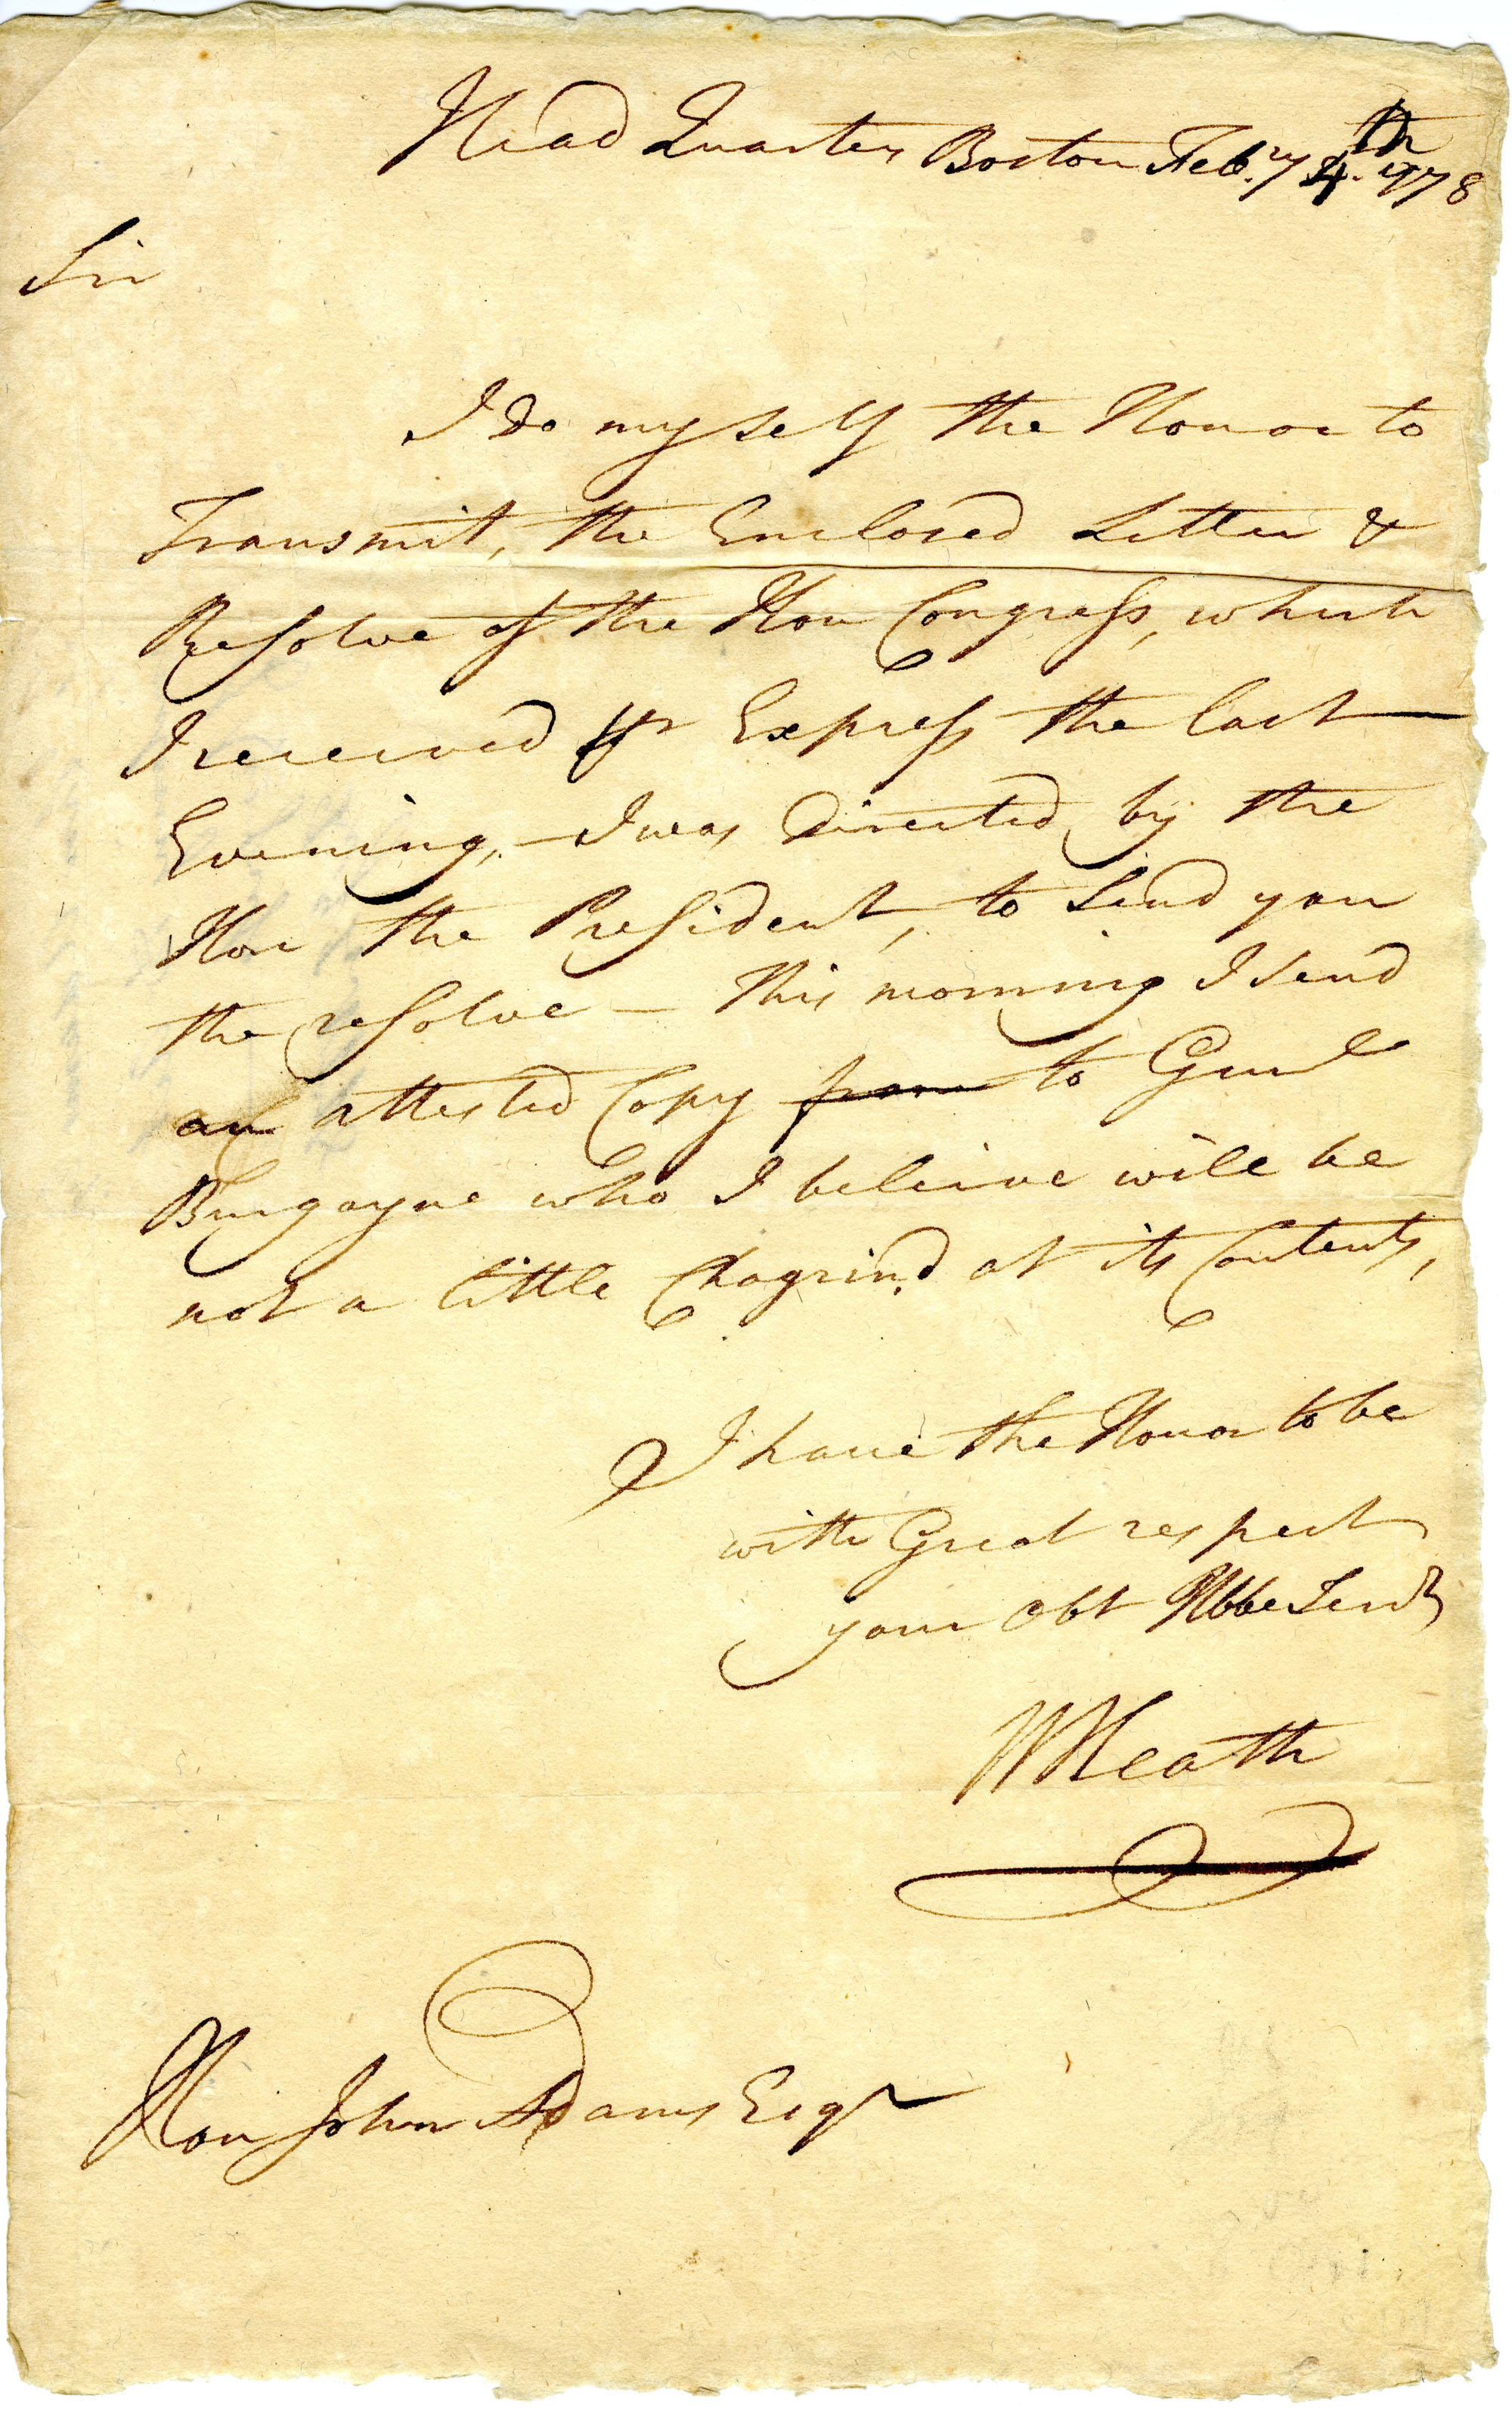 Letter from William Heath to John Adams